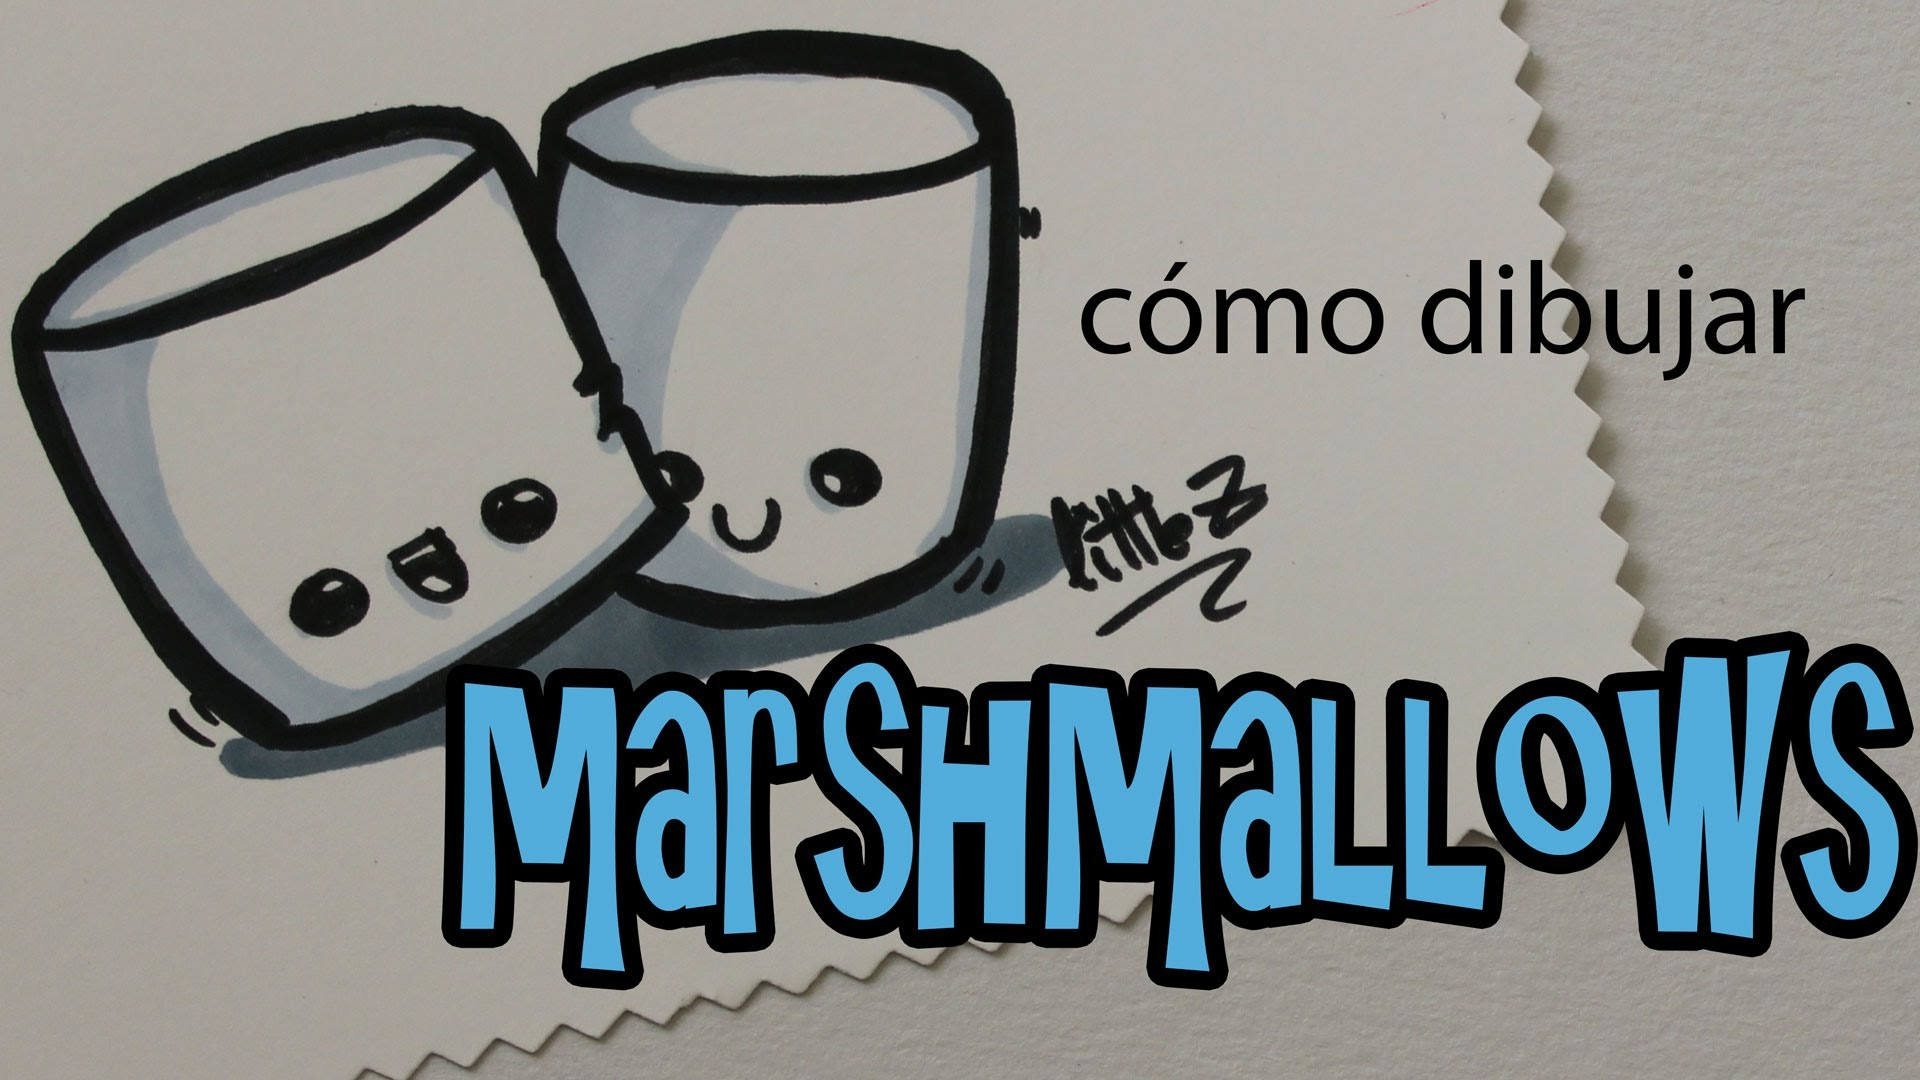 Cómo dibujar nubes o malvaviscos kawaii. How to draw a marshmallows